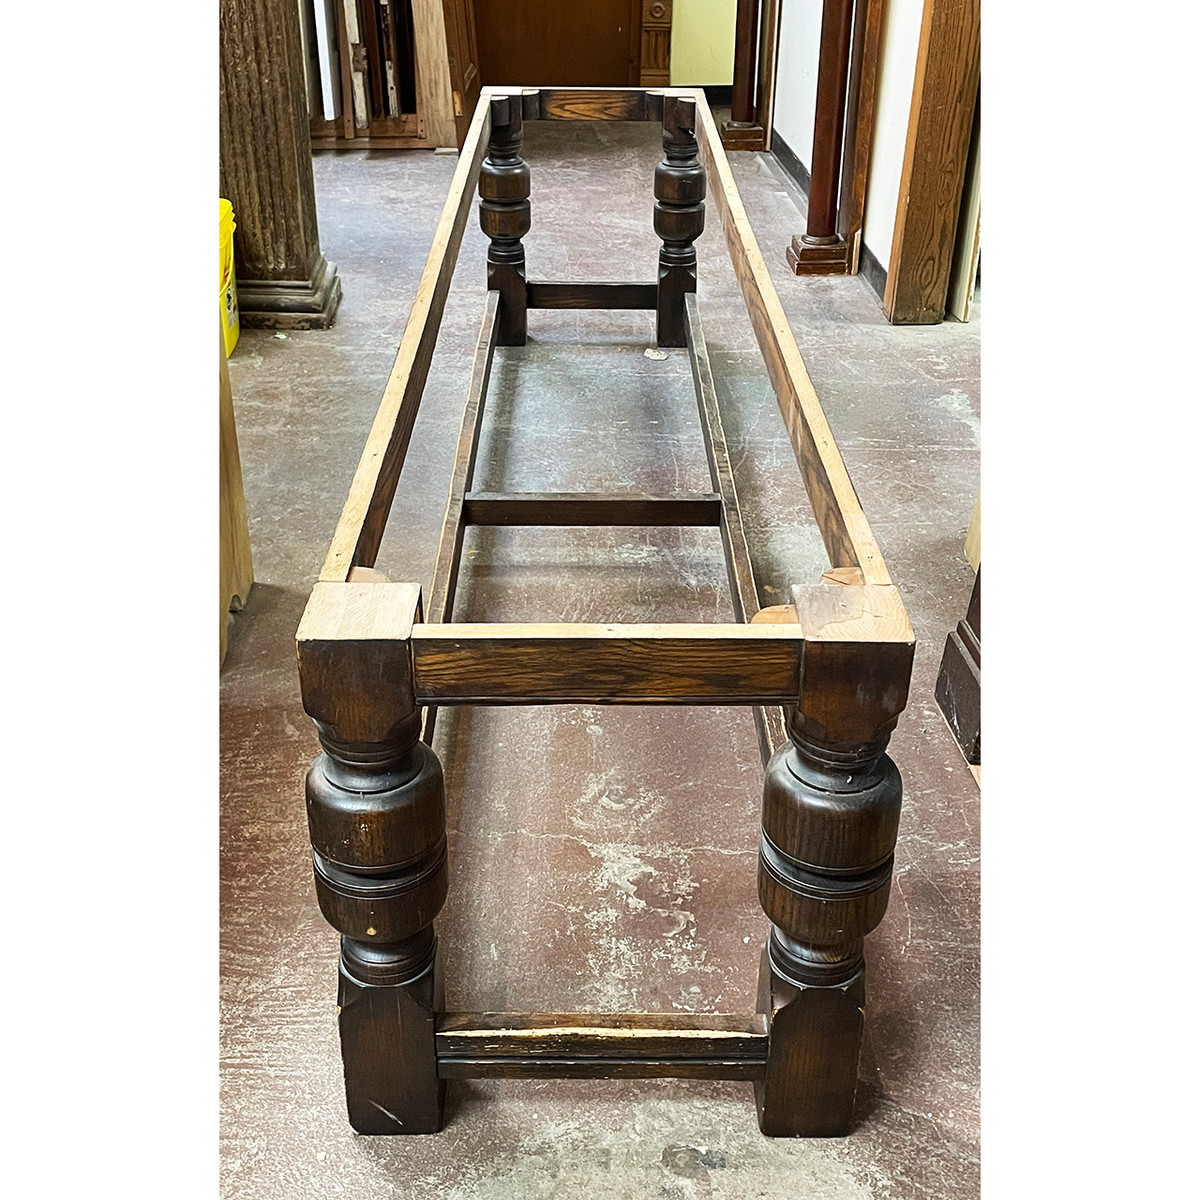 F21089 - Antique Table Base